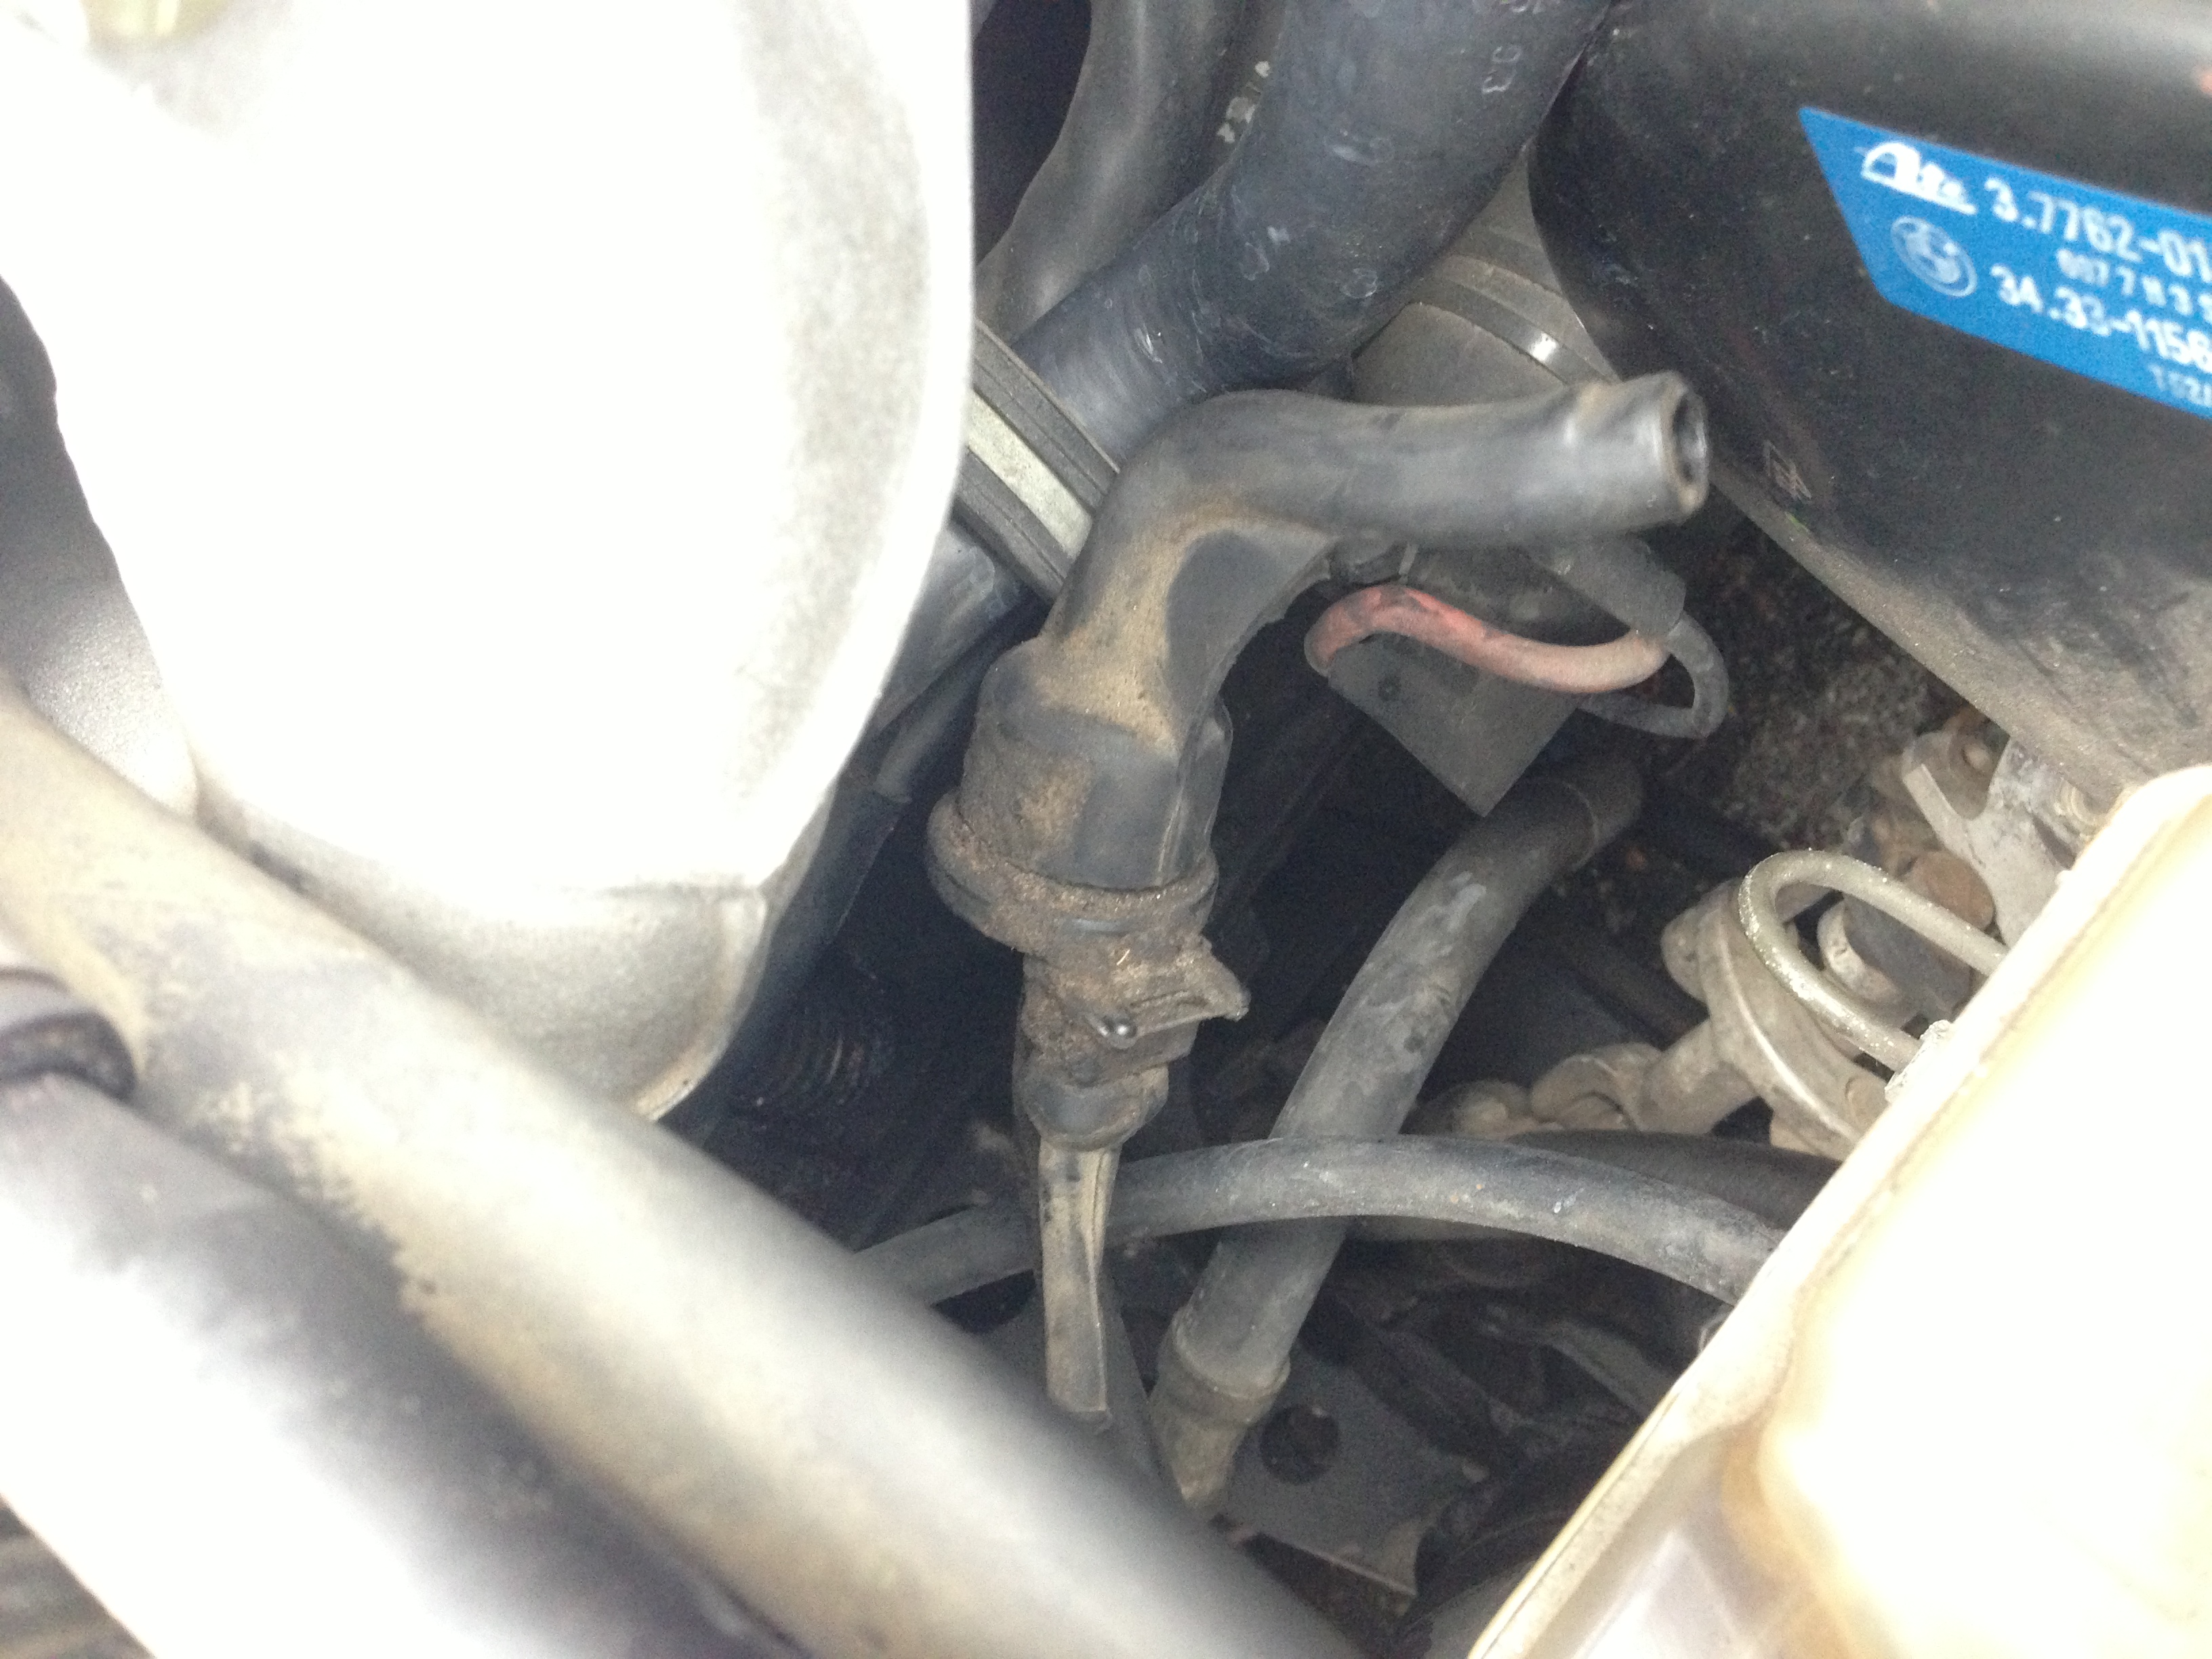 E30 Vacuum leak – 'advanced' location under the throttle body